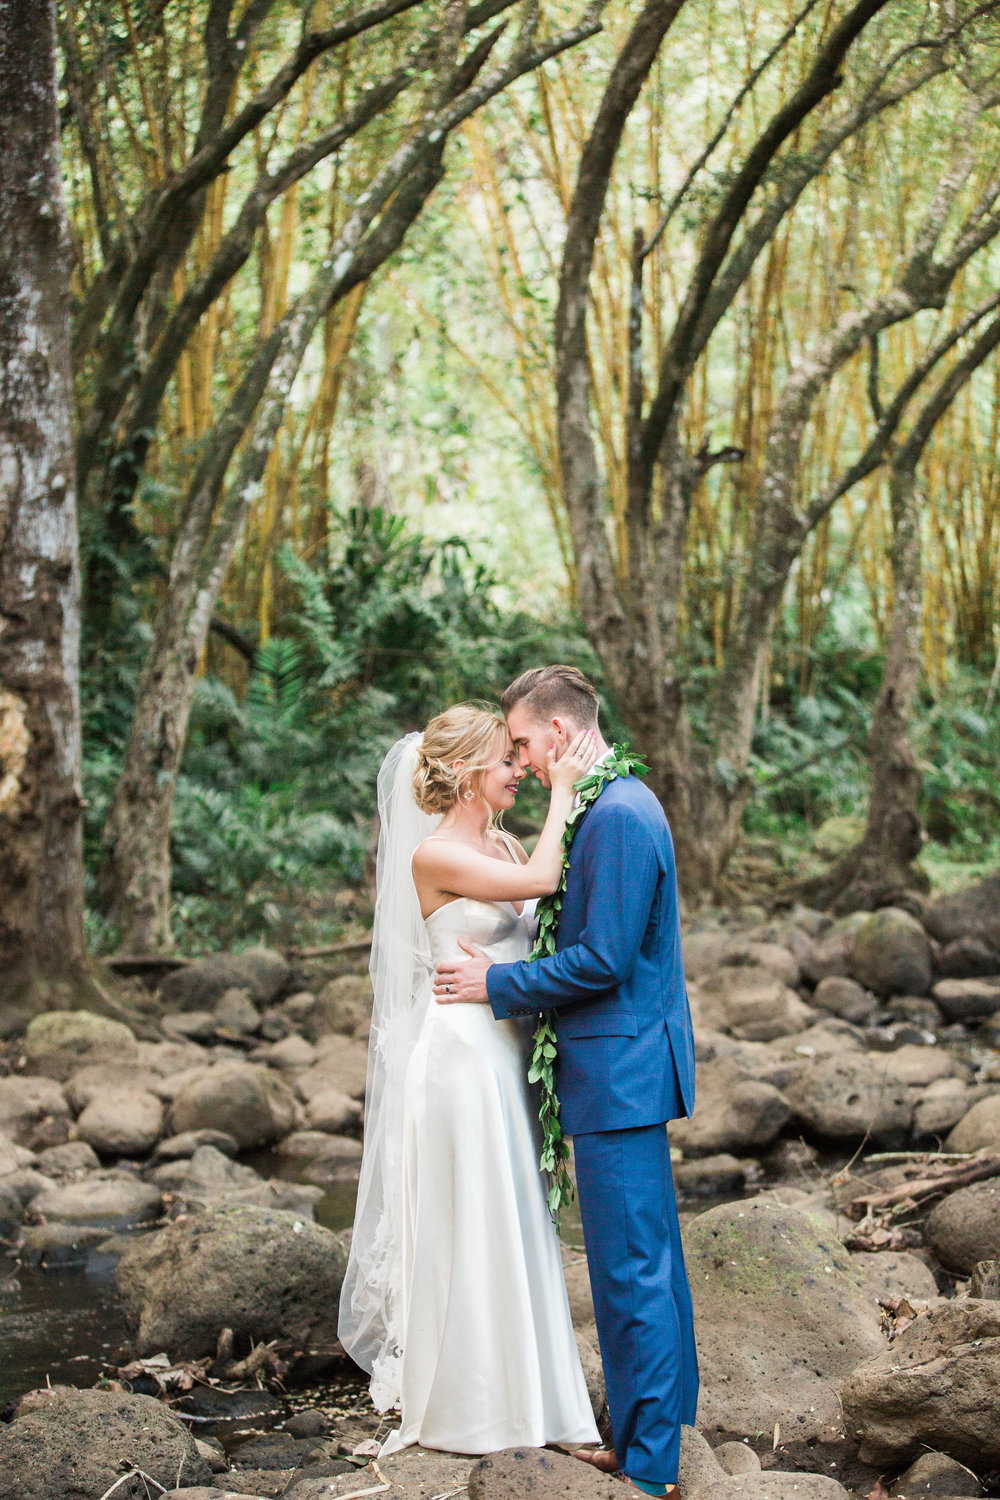 Colorful Waimea Valley- Roam Rentals Hawaii  http://roamrentalshawaii.squarespace.com/blog/2018/8/13/colorful-waimea-valley-wedding